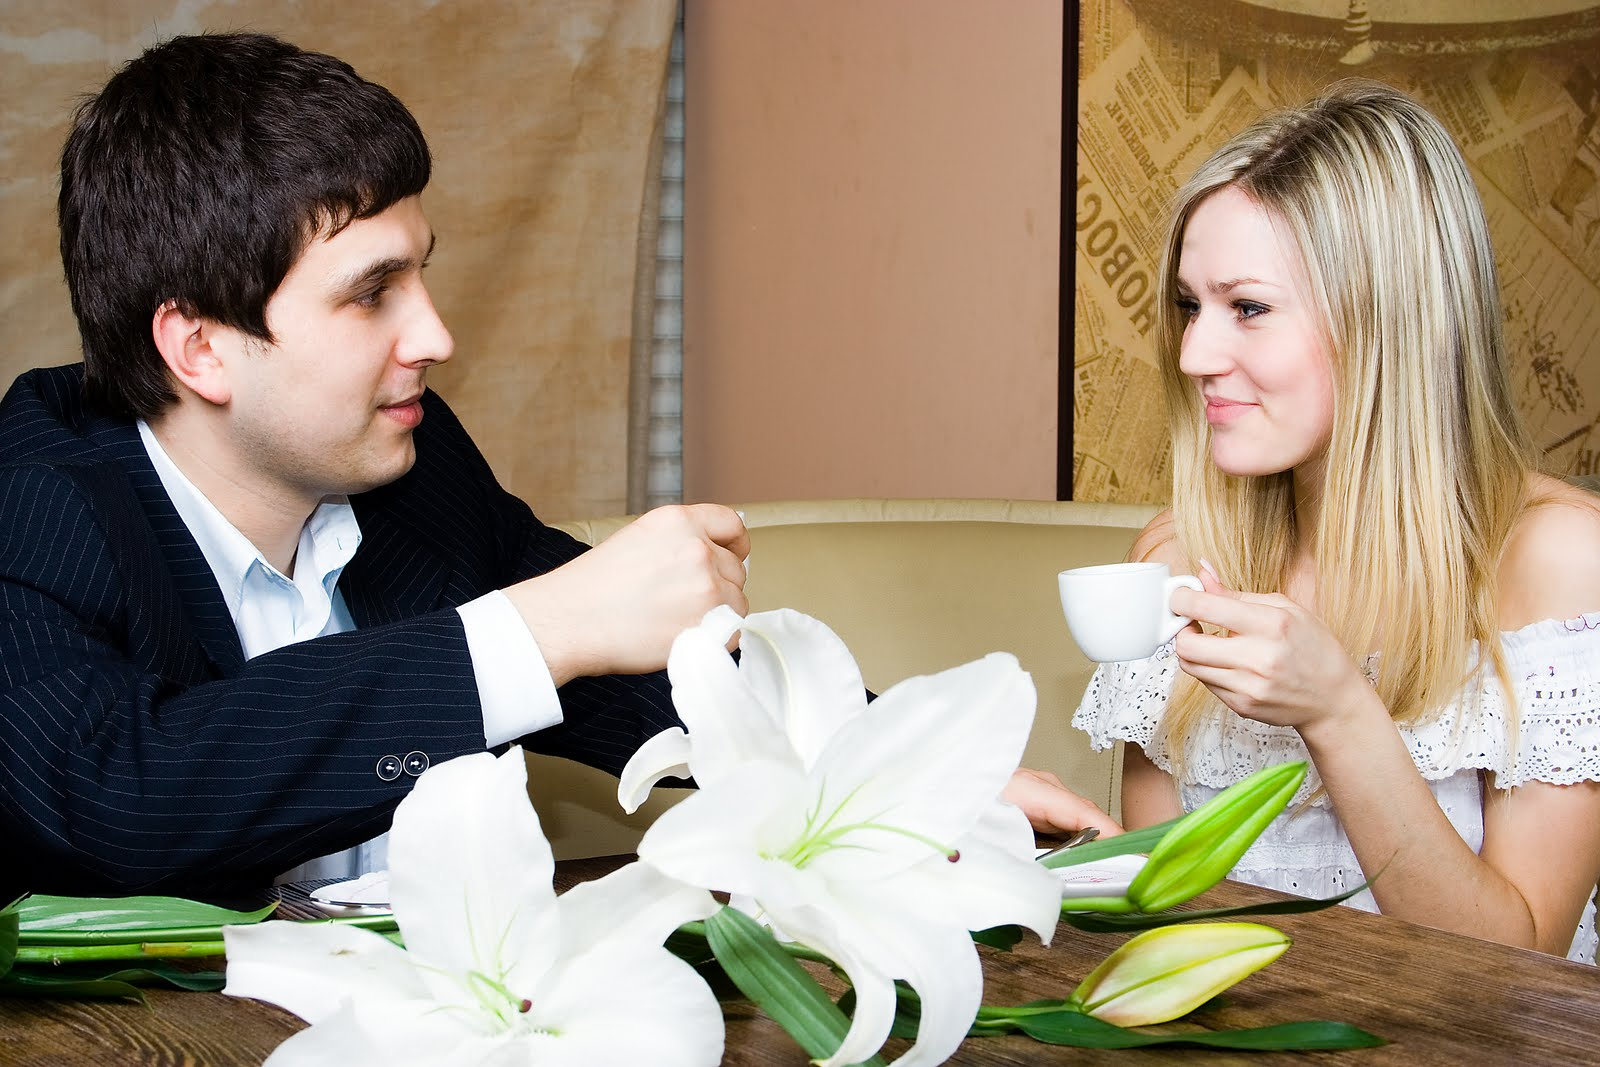 How to fix early dating mistakes